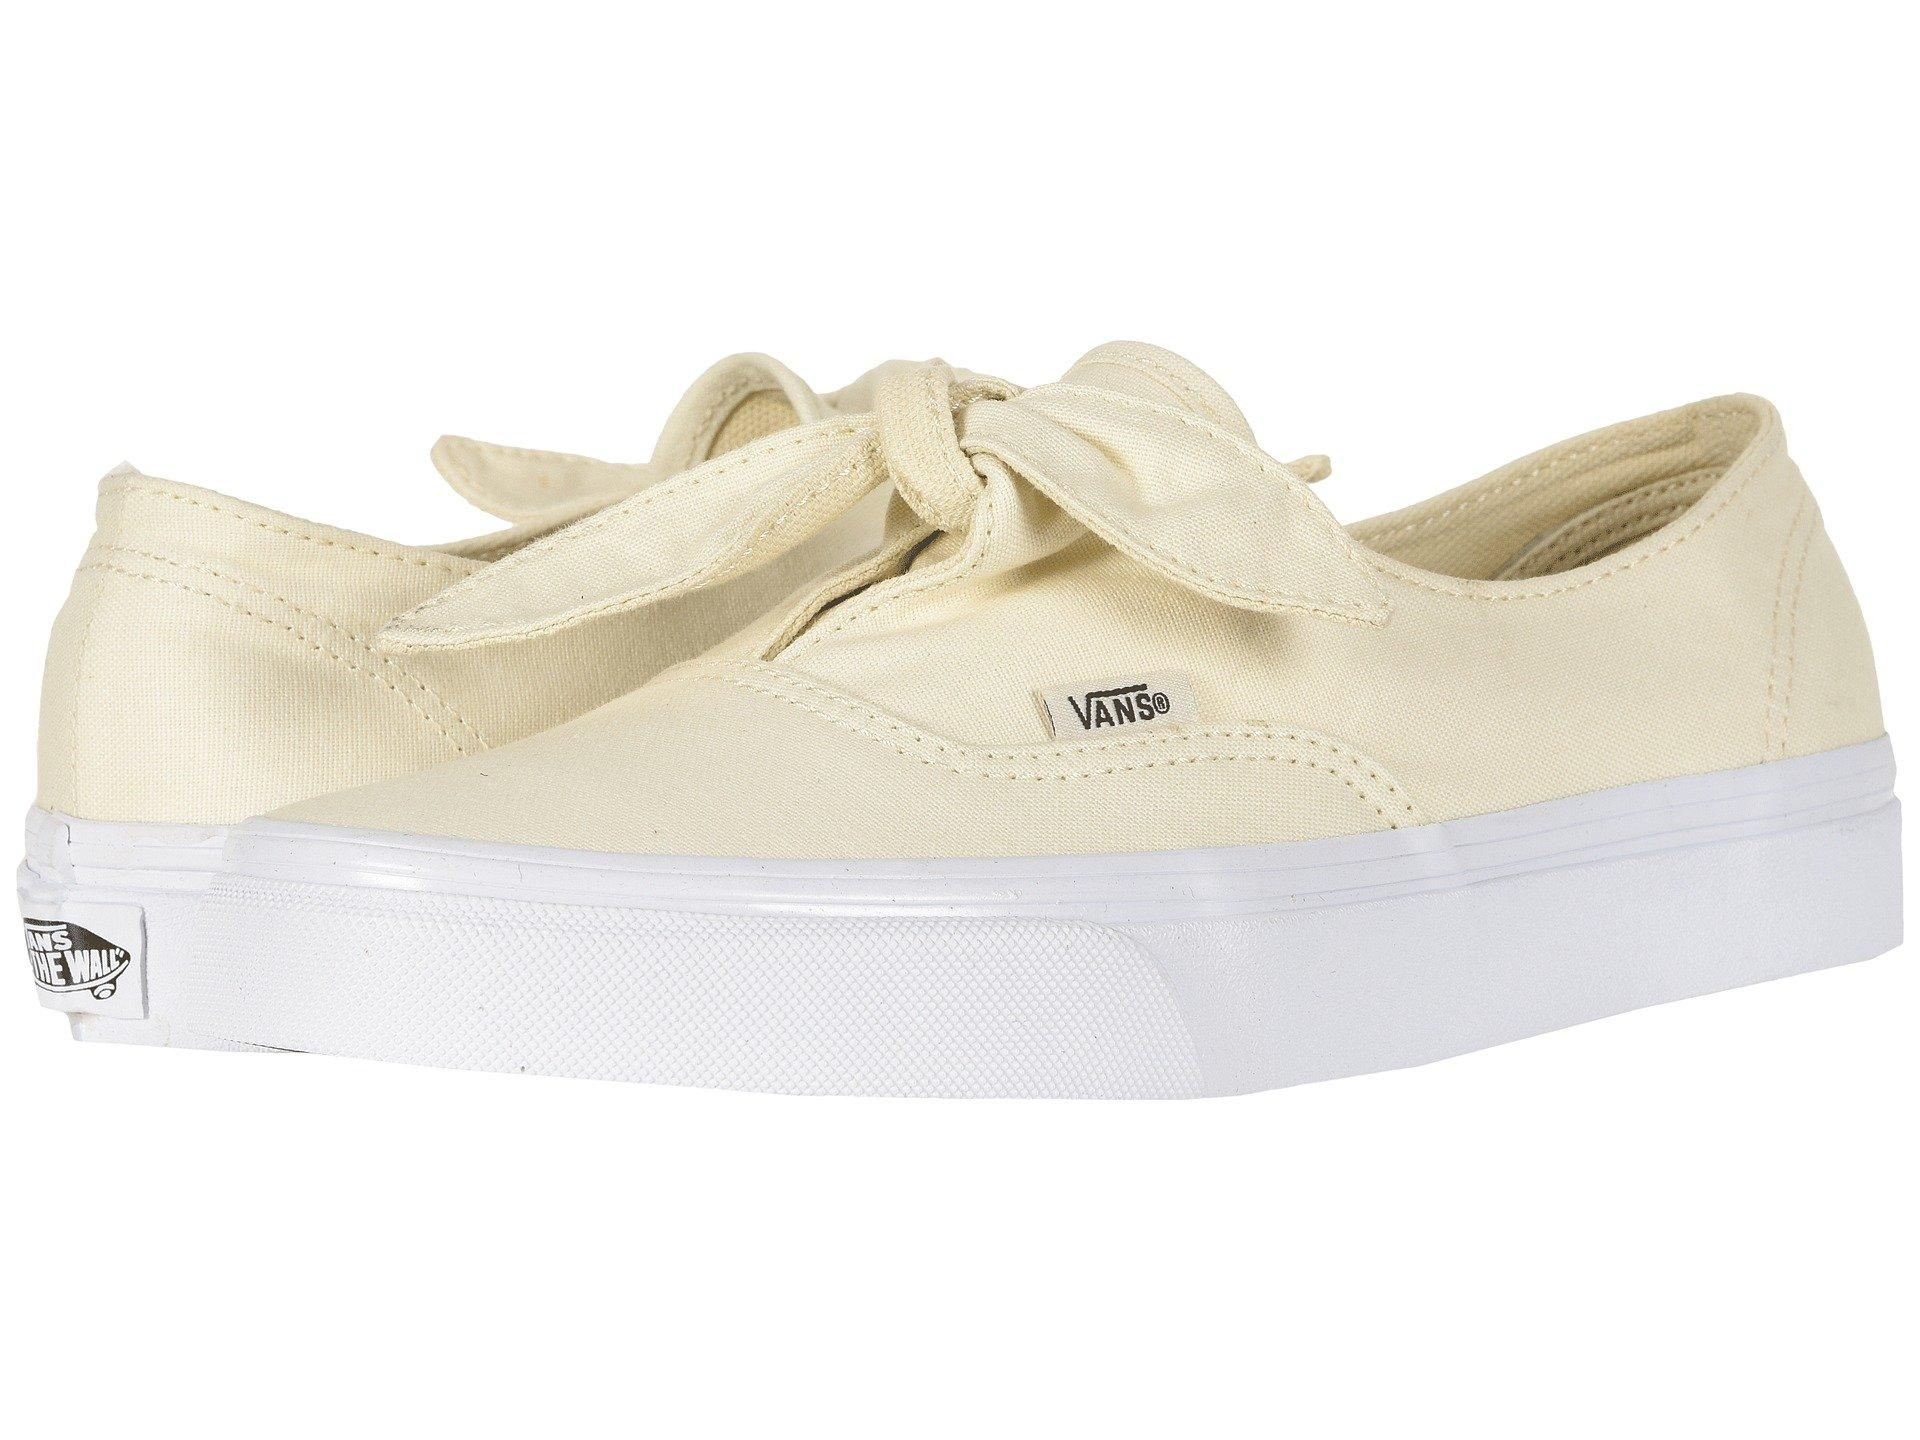 Vans Canvas Authentic Knotted in Beige (Natural) - Lyst